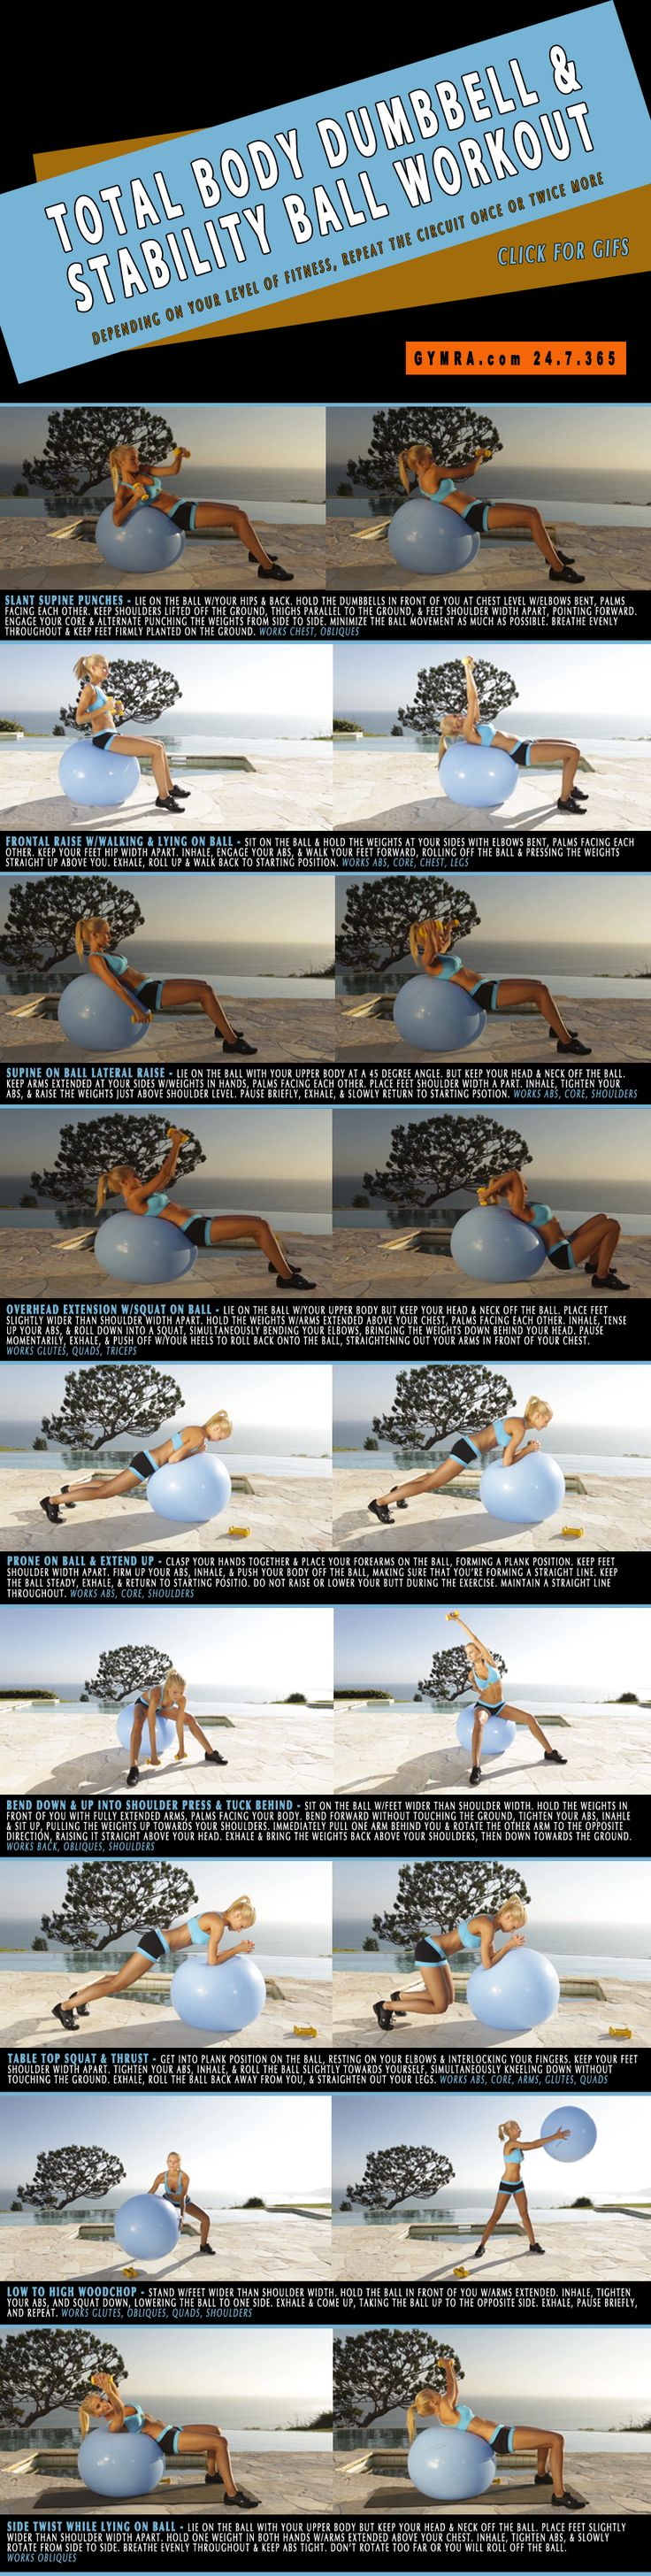 Total Body Workout with Dumbbells and a Stability Ball. Engage all your muscles strengthen your core while improving stability. Click the image to see the moves in GIF form. #fitness #exercise #workout #abs #health #weightloss